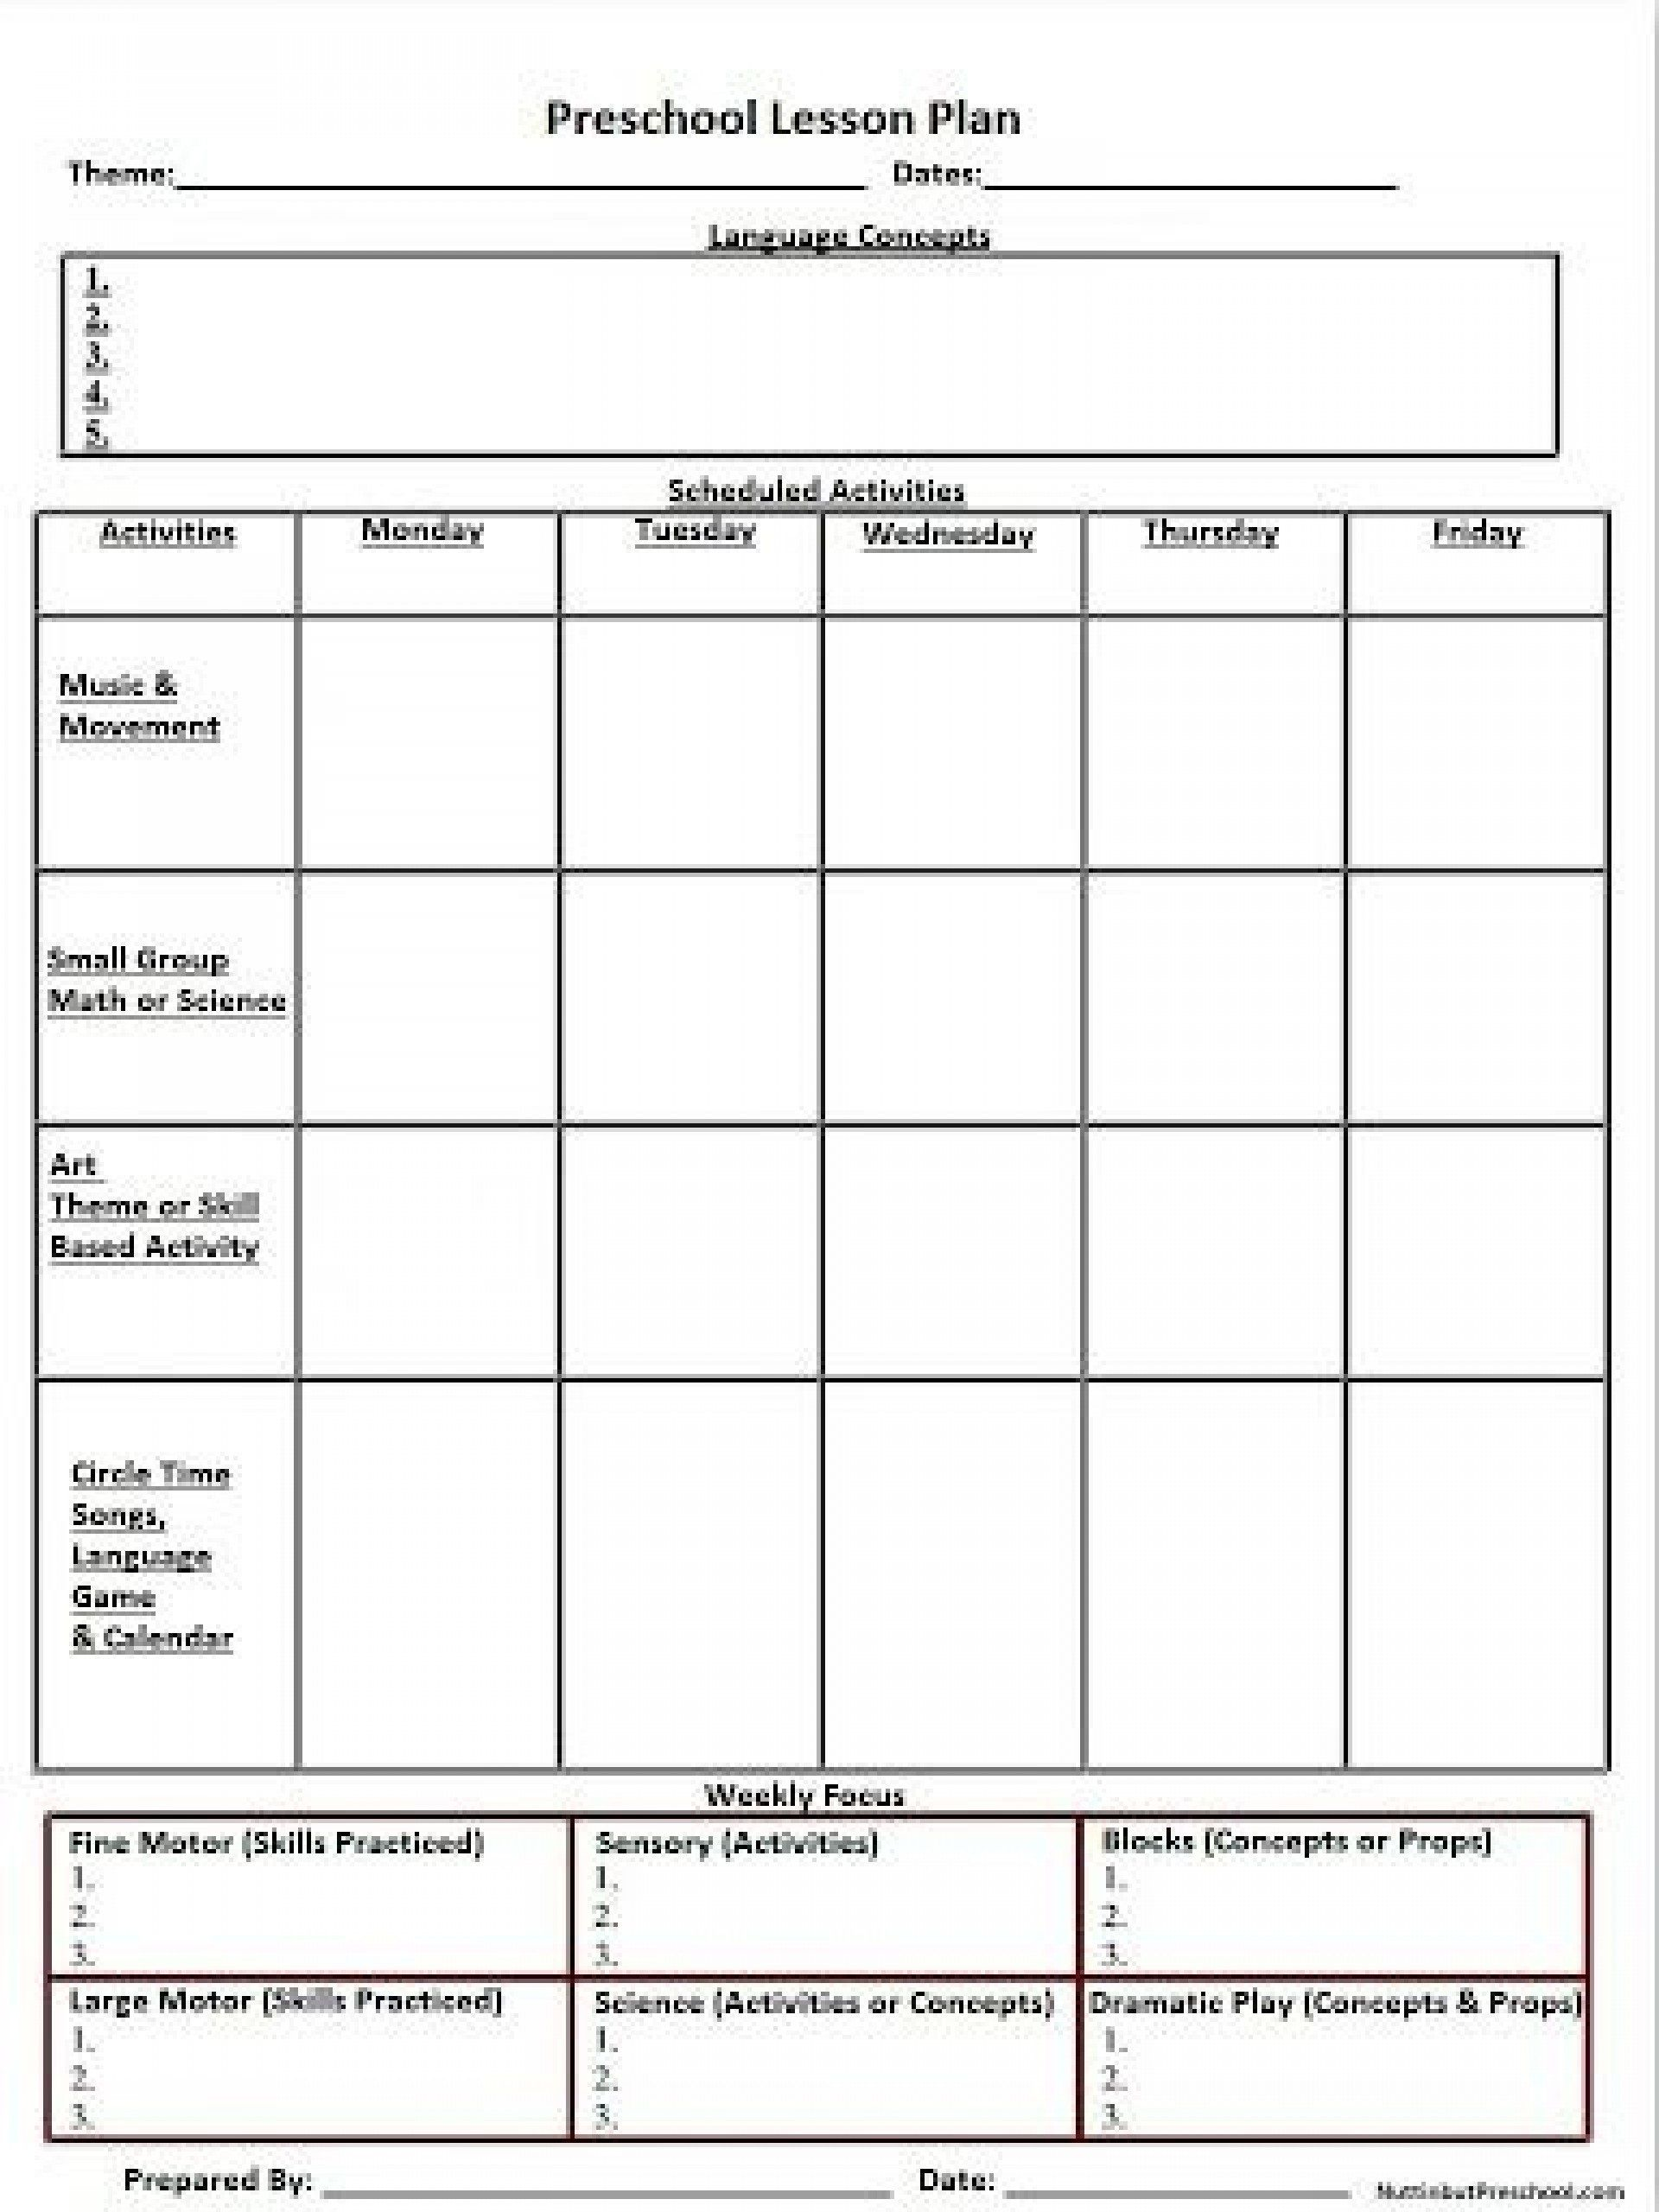 007 Shocking Weekly Lesson Plan Template High School Def  Free For Math Example HistoryFull